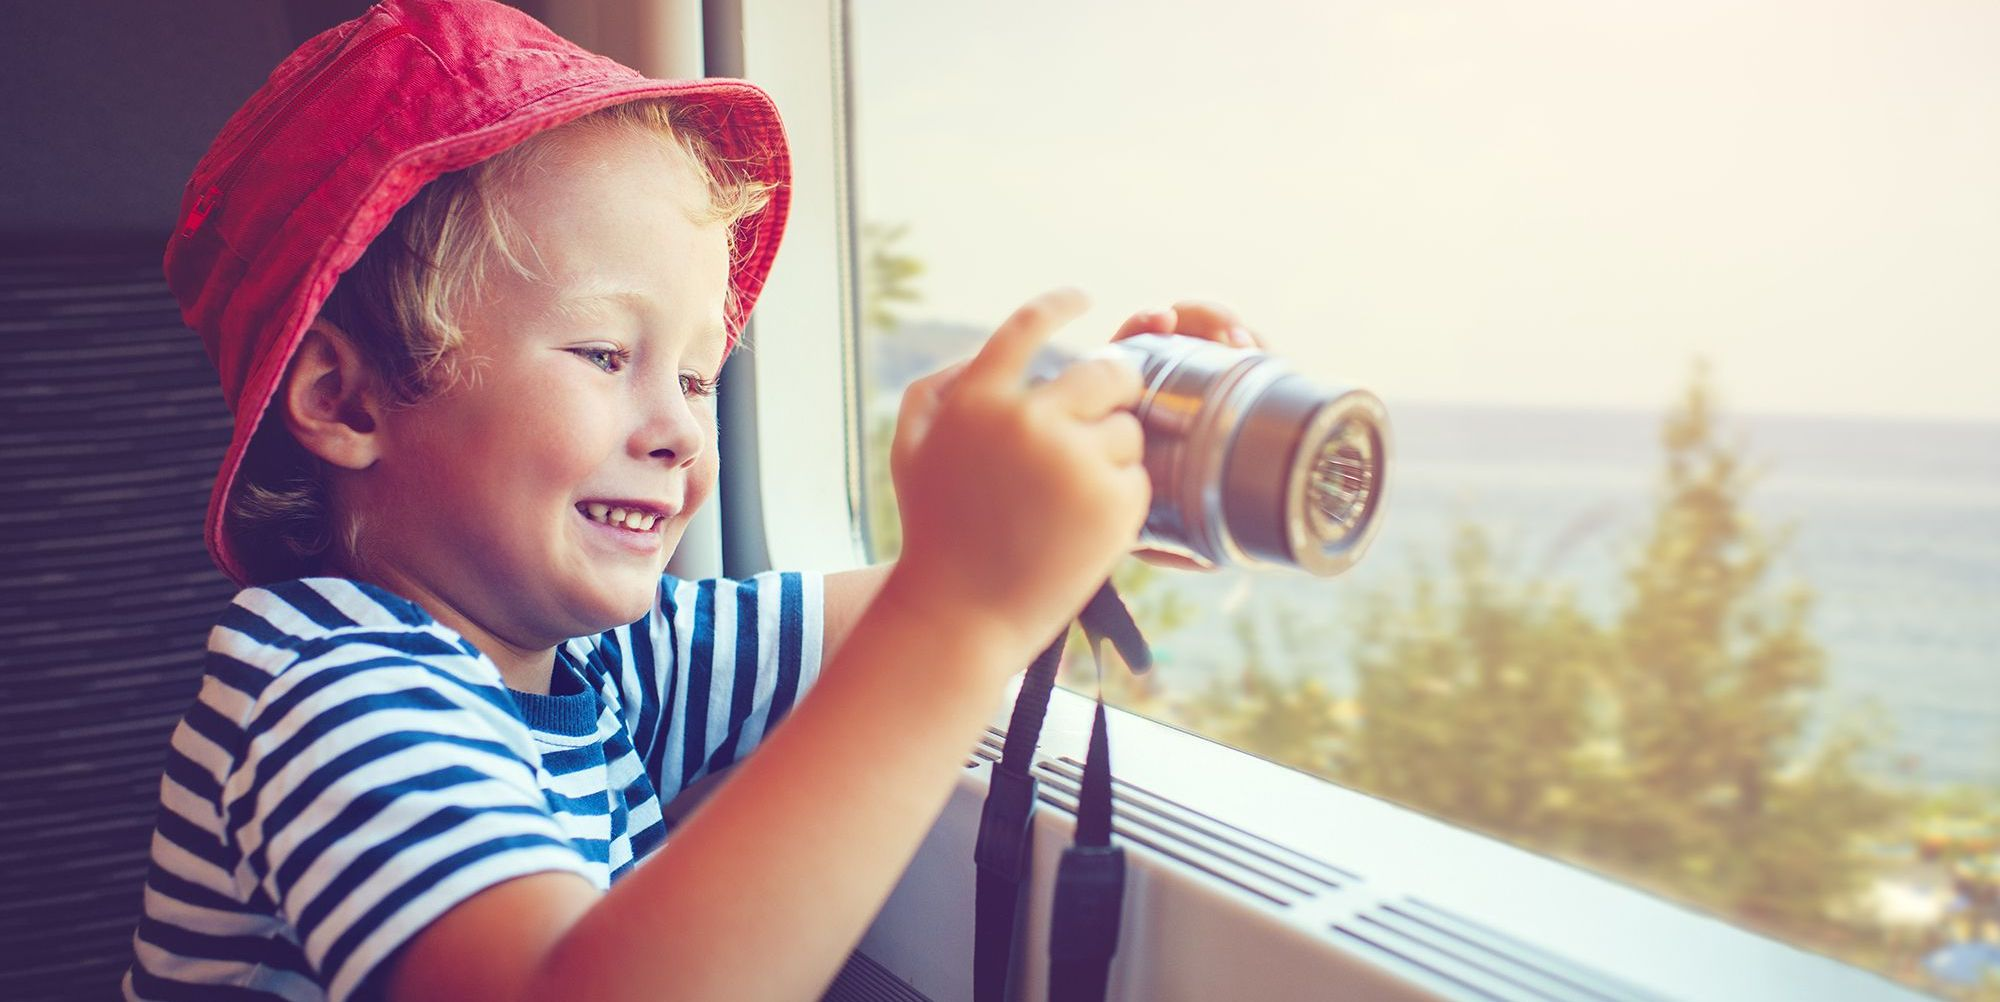 scenic train rides for kids - best train rides for families in america